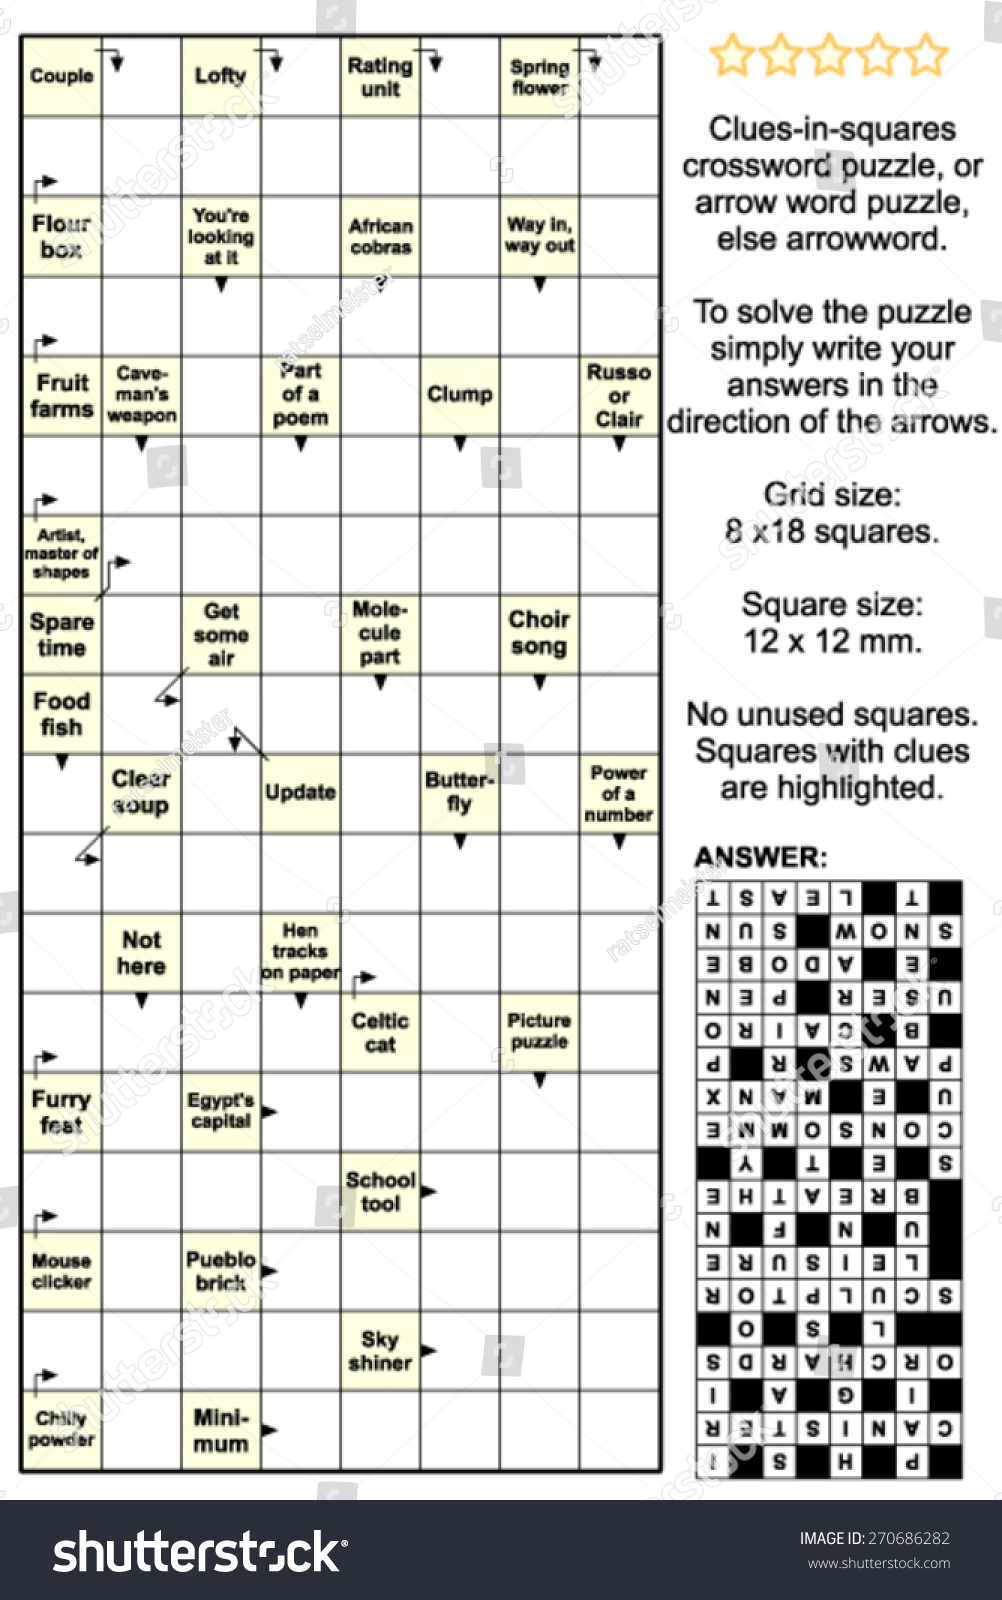 Clues-In-Squares Crossword Puzzle, Or… Stock Photo 270686282 - Printable Arrow Crossword Puzzles For Free